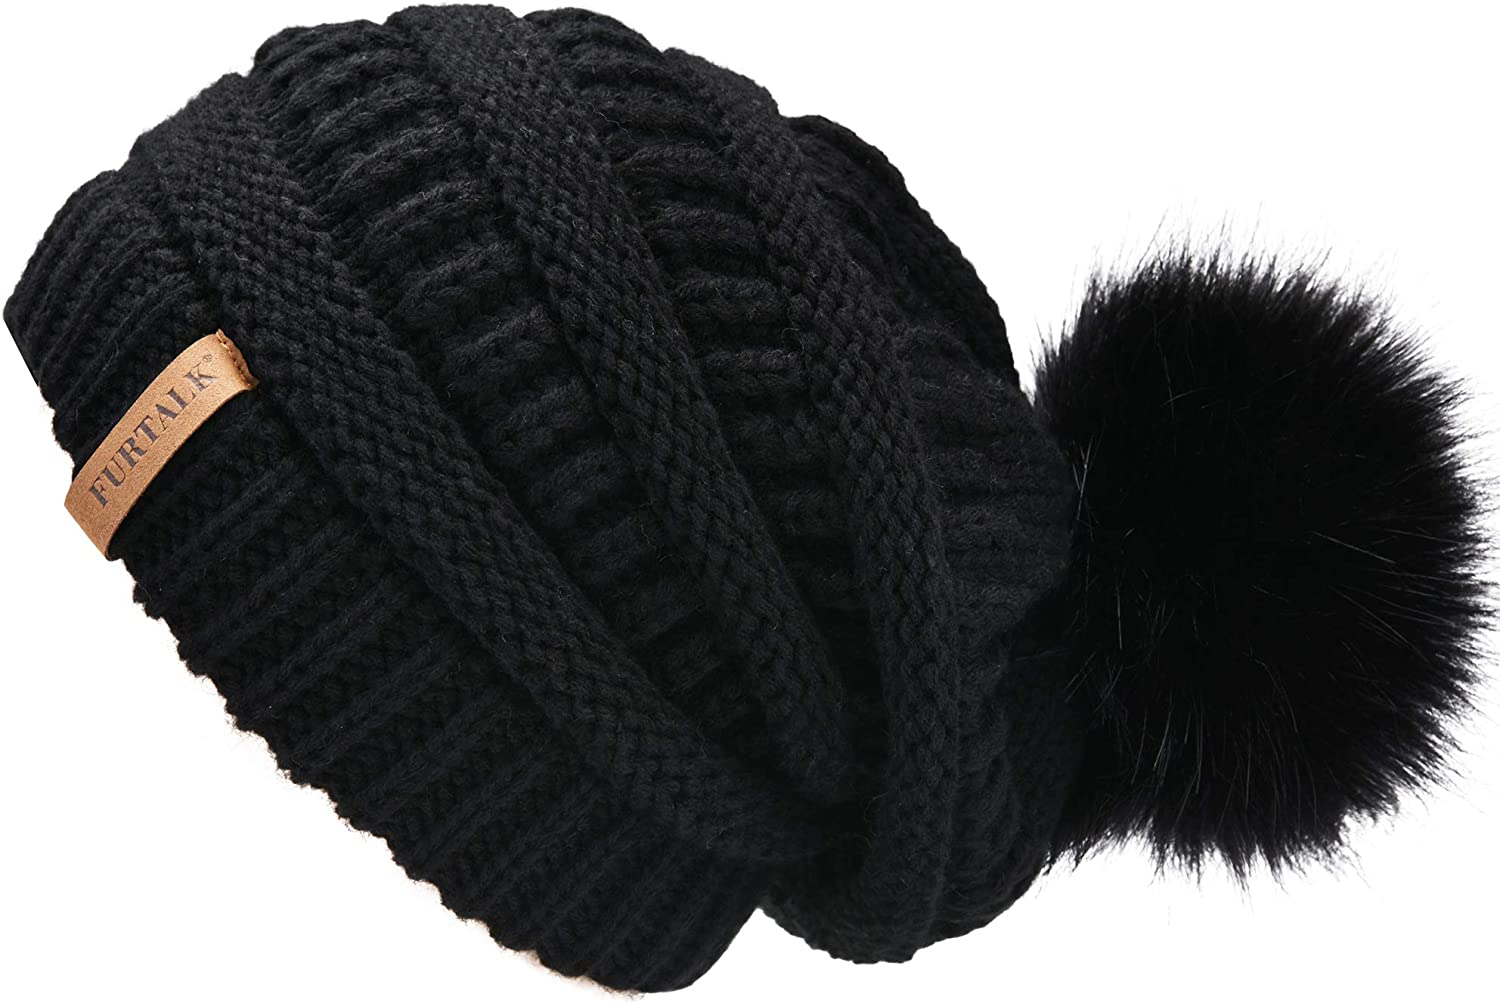 FURTALK Womens Slouchy Winter Hats Knitted Beanie Caps Real Fur Pom Pom Bobble Hat